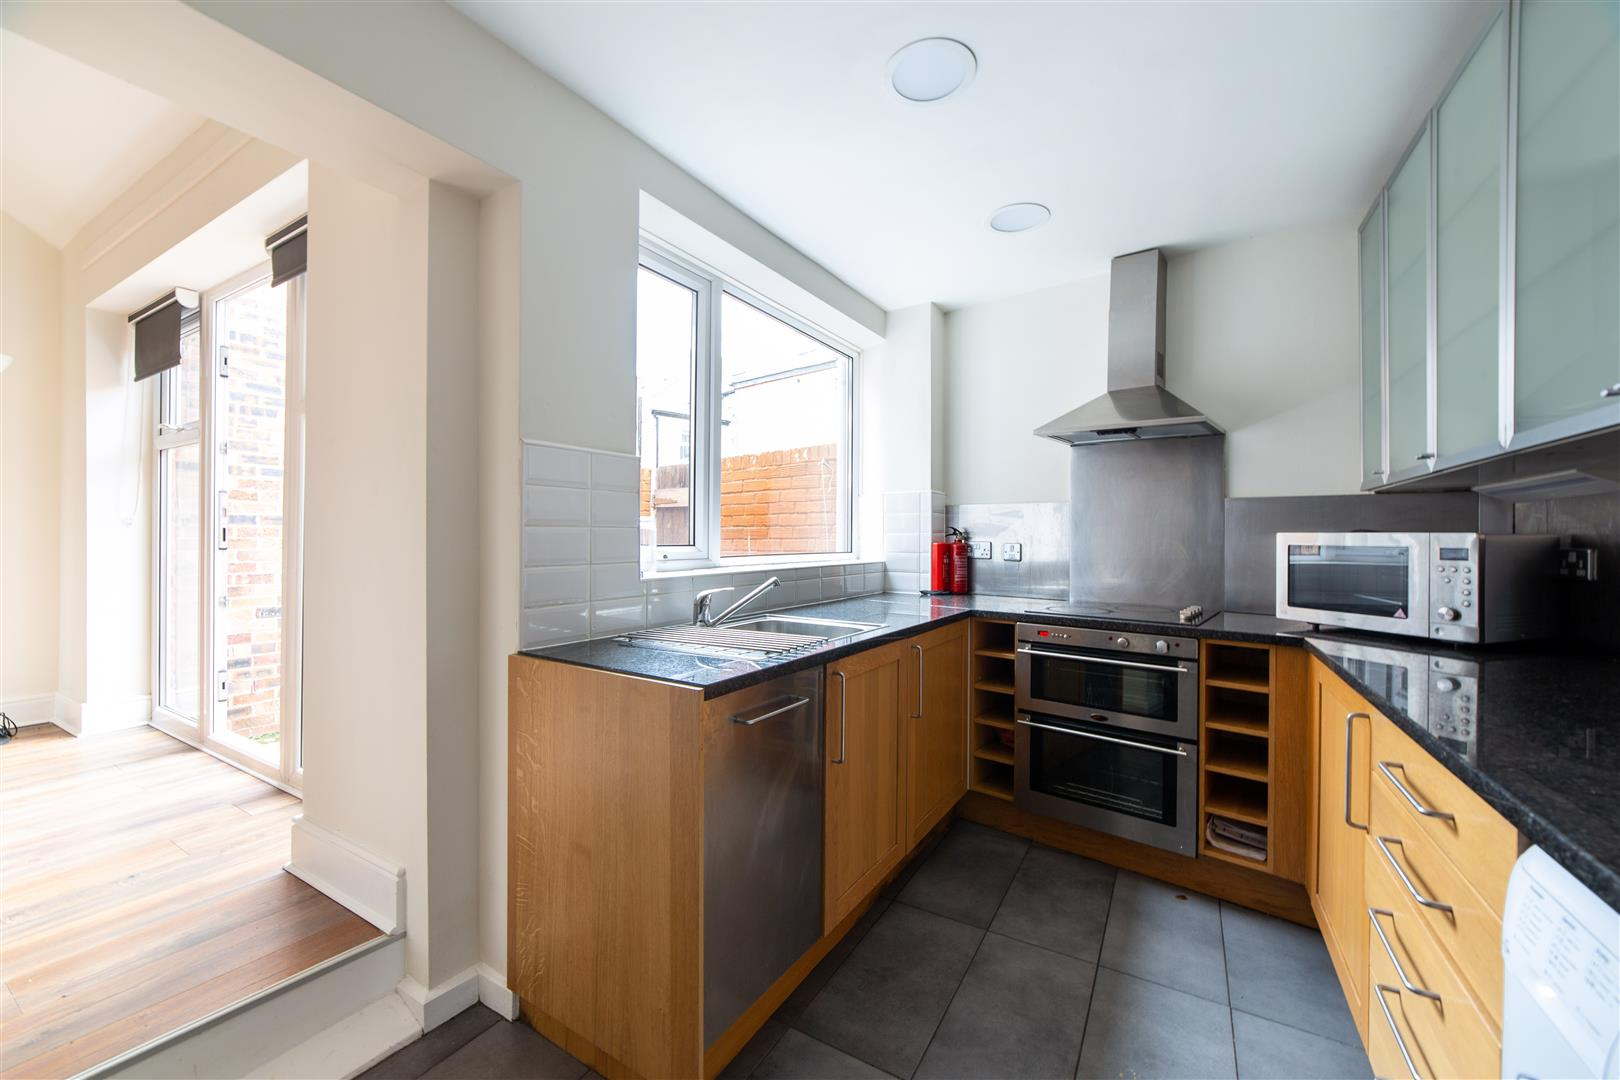 6 bed terraced house to rent in Newcastle Upon Tyne, NE2 1AY  - Property Image 5